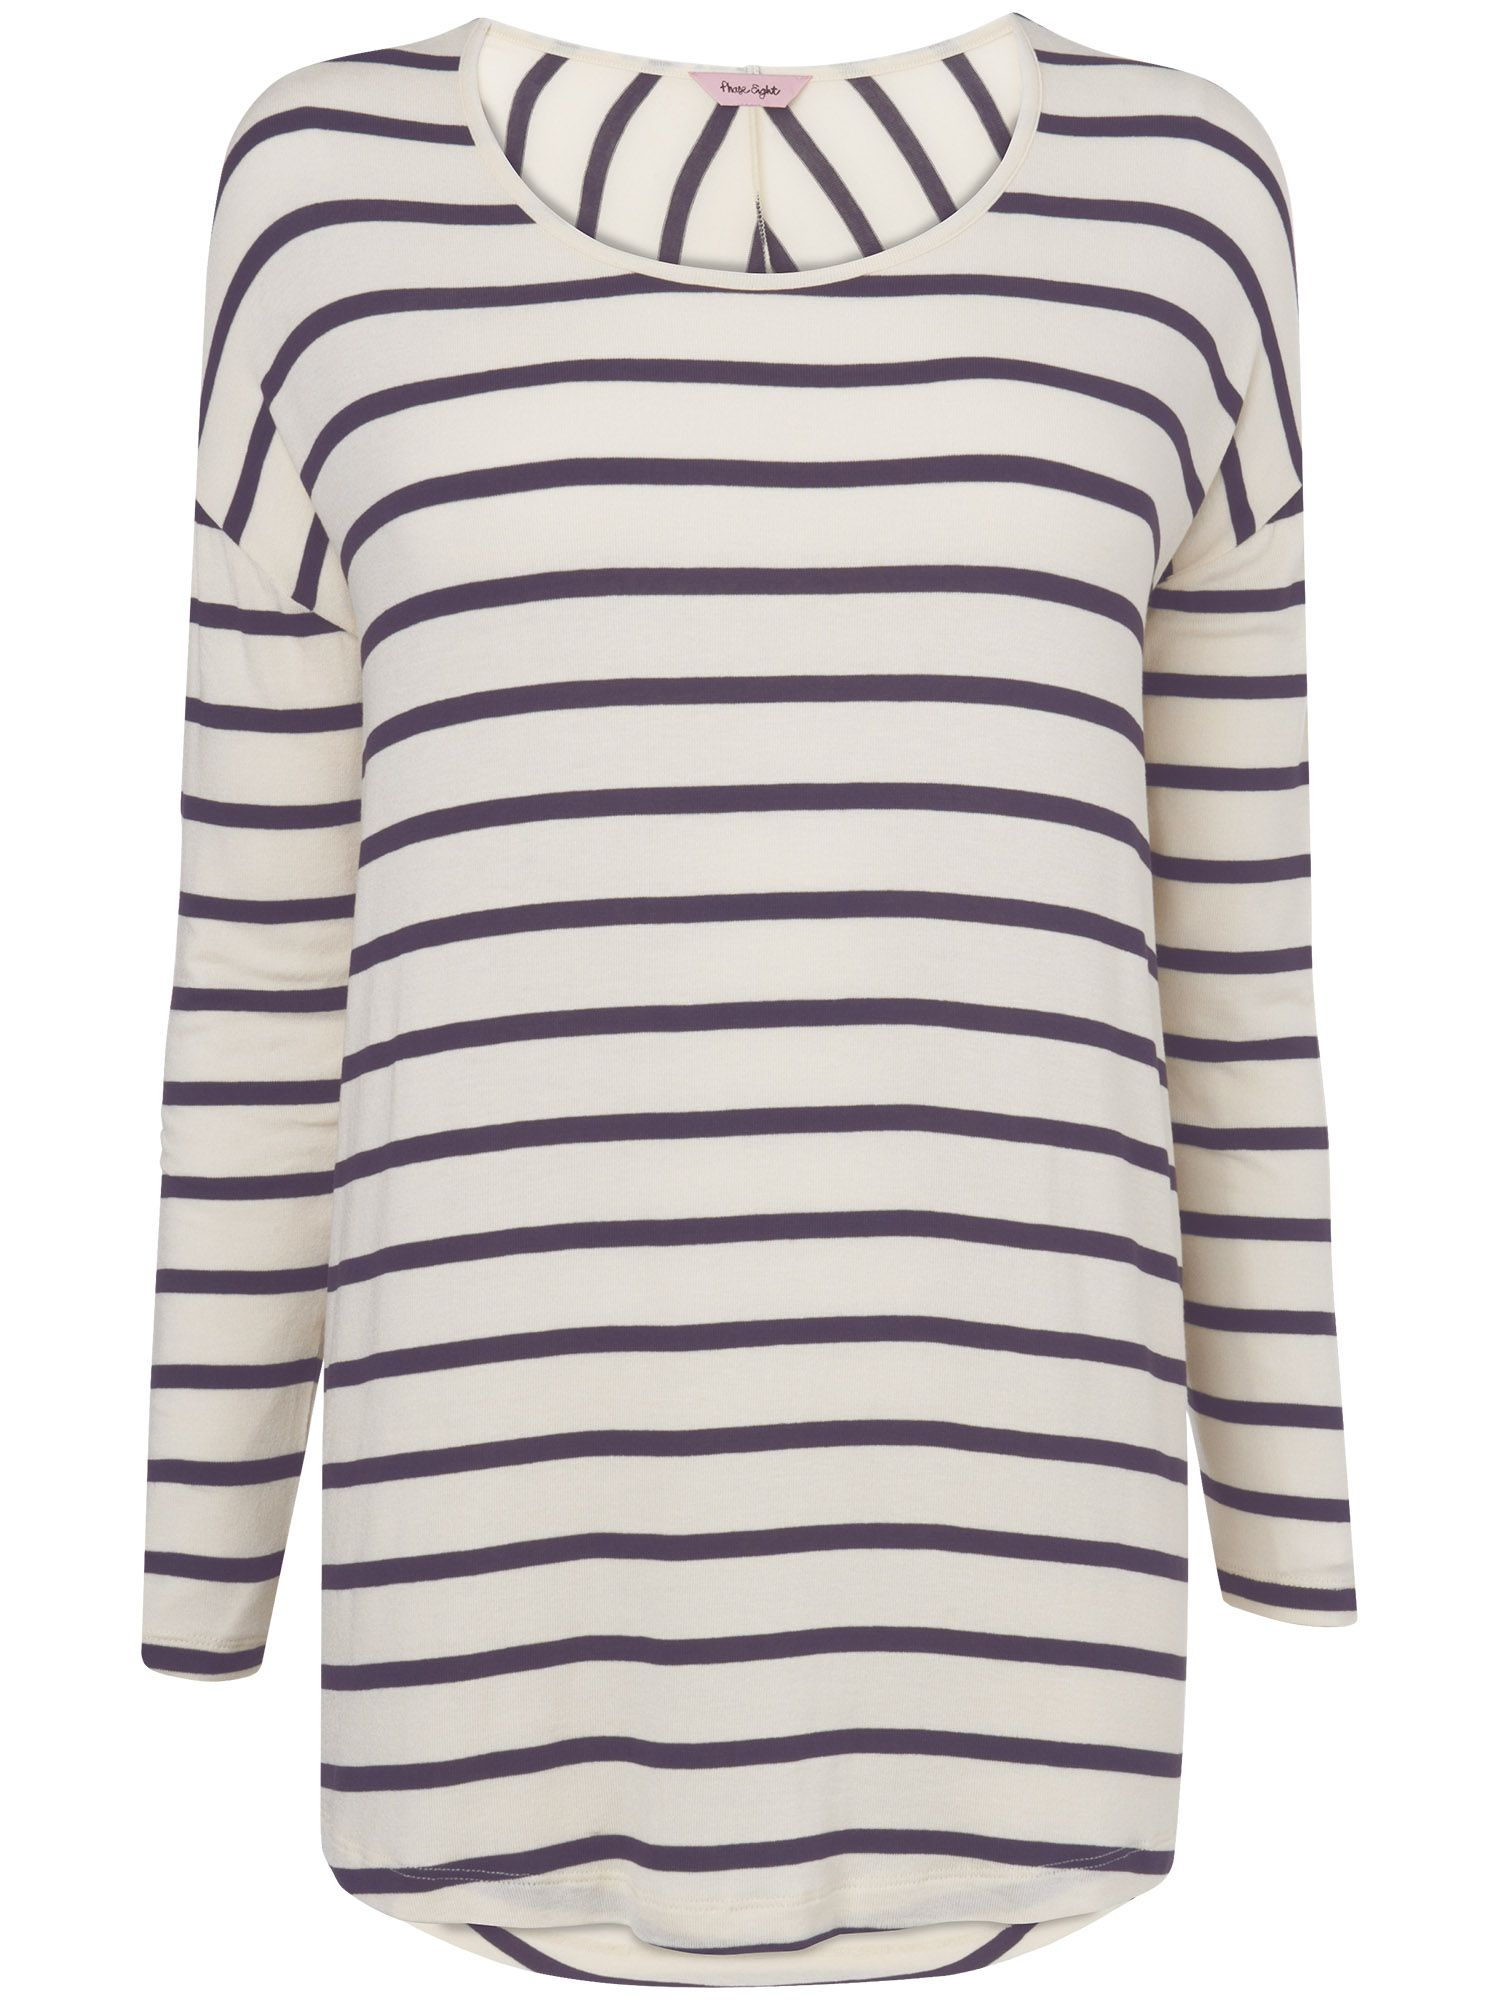 Doris stripe top